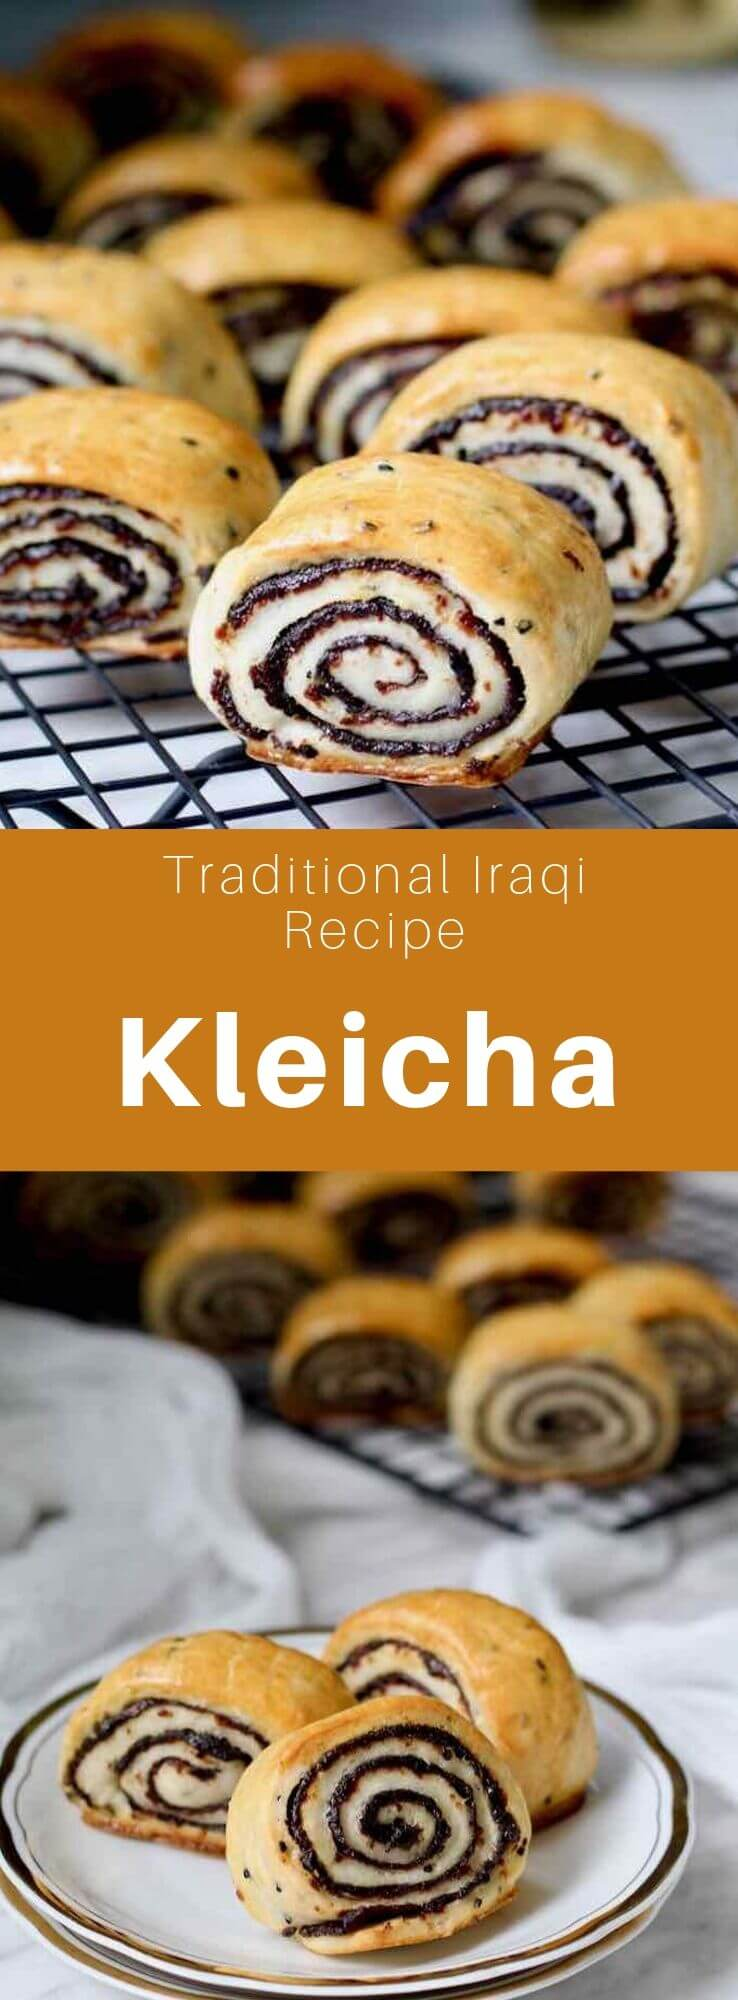 Kleicha is a delicious small pastry that is considered to be the Iraqi national pastry made from a dough stuffed with a cardamom-flavored date paste. #Iraq #IraqiCuisine #IraqiRecipe #IraqiPastry #MiddleEastern #WorldCuisine #196flavors